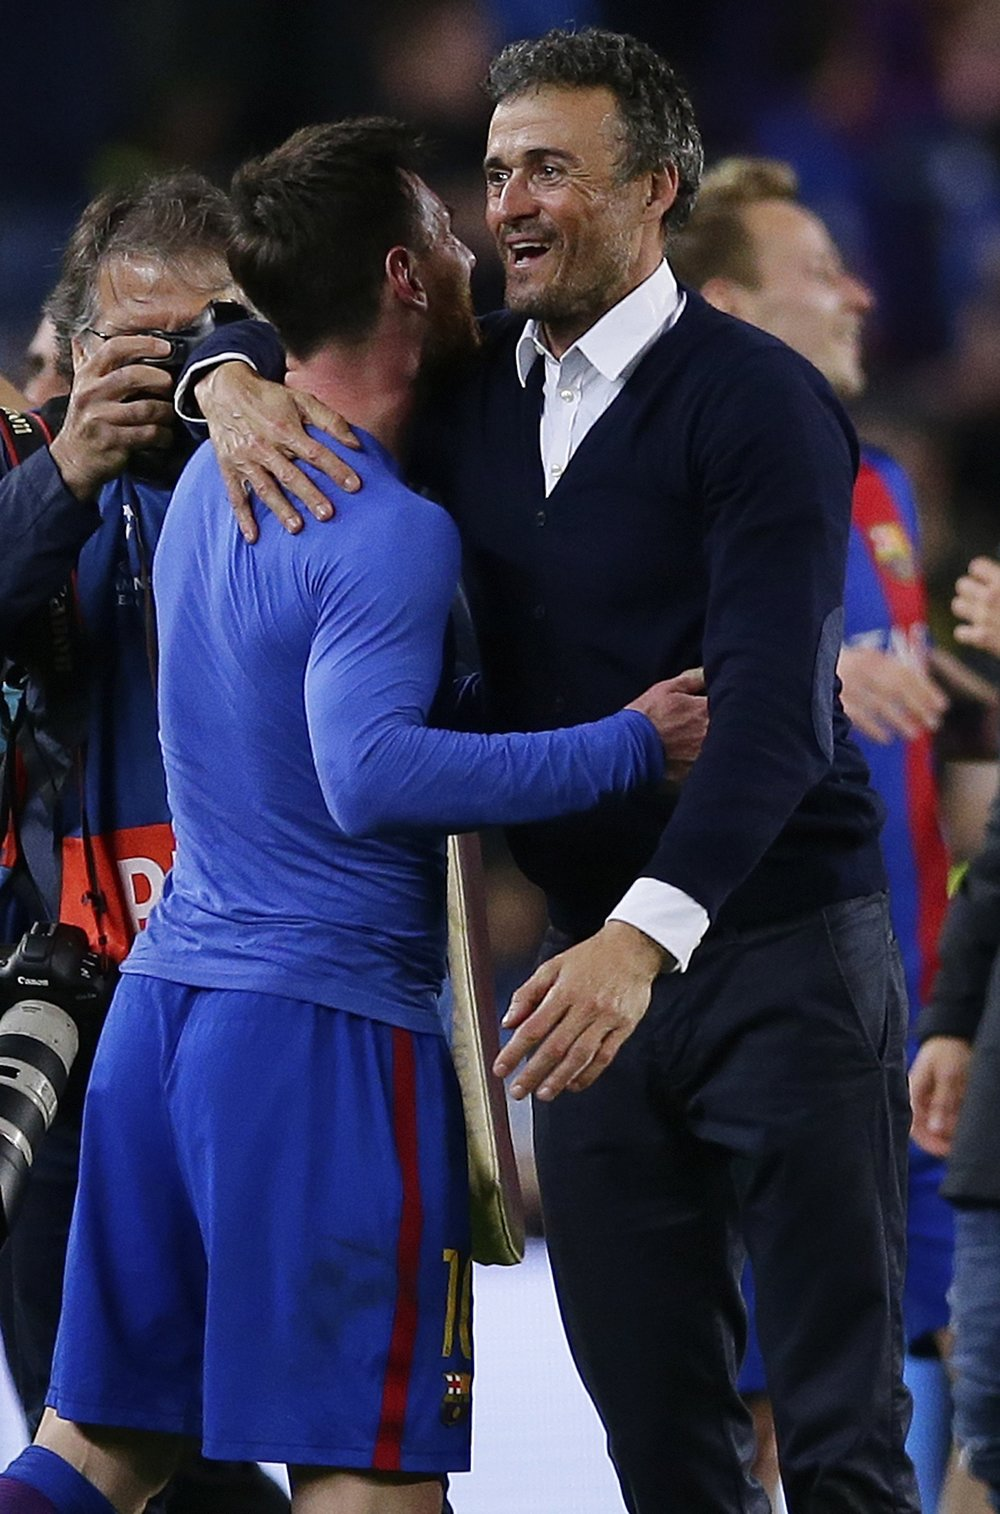 Barcelona's head coach Luis Enrique celebrates with Lionel Messi at the end of the Champions League round of 16. (Manu Fernandez/AP)